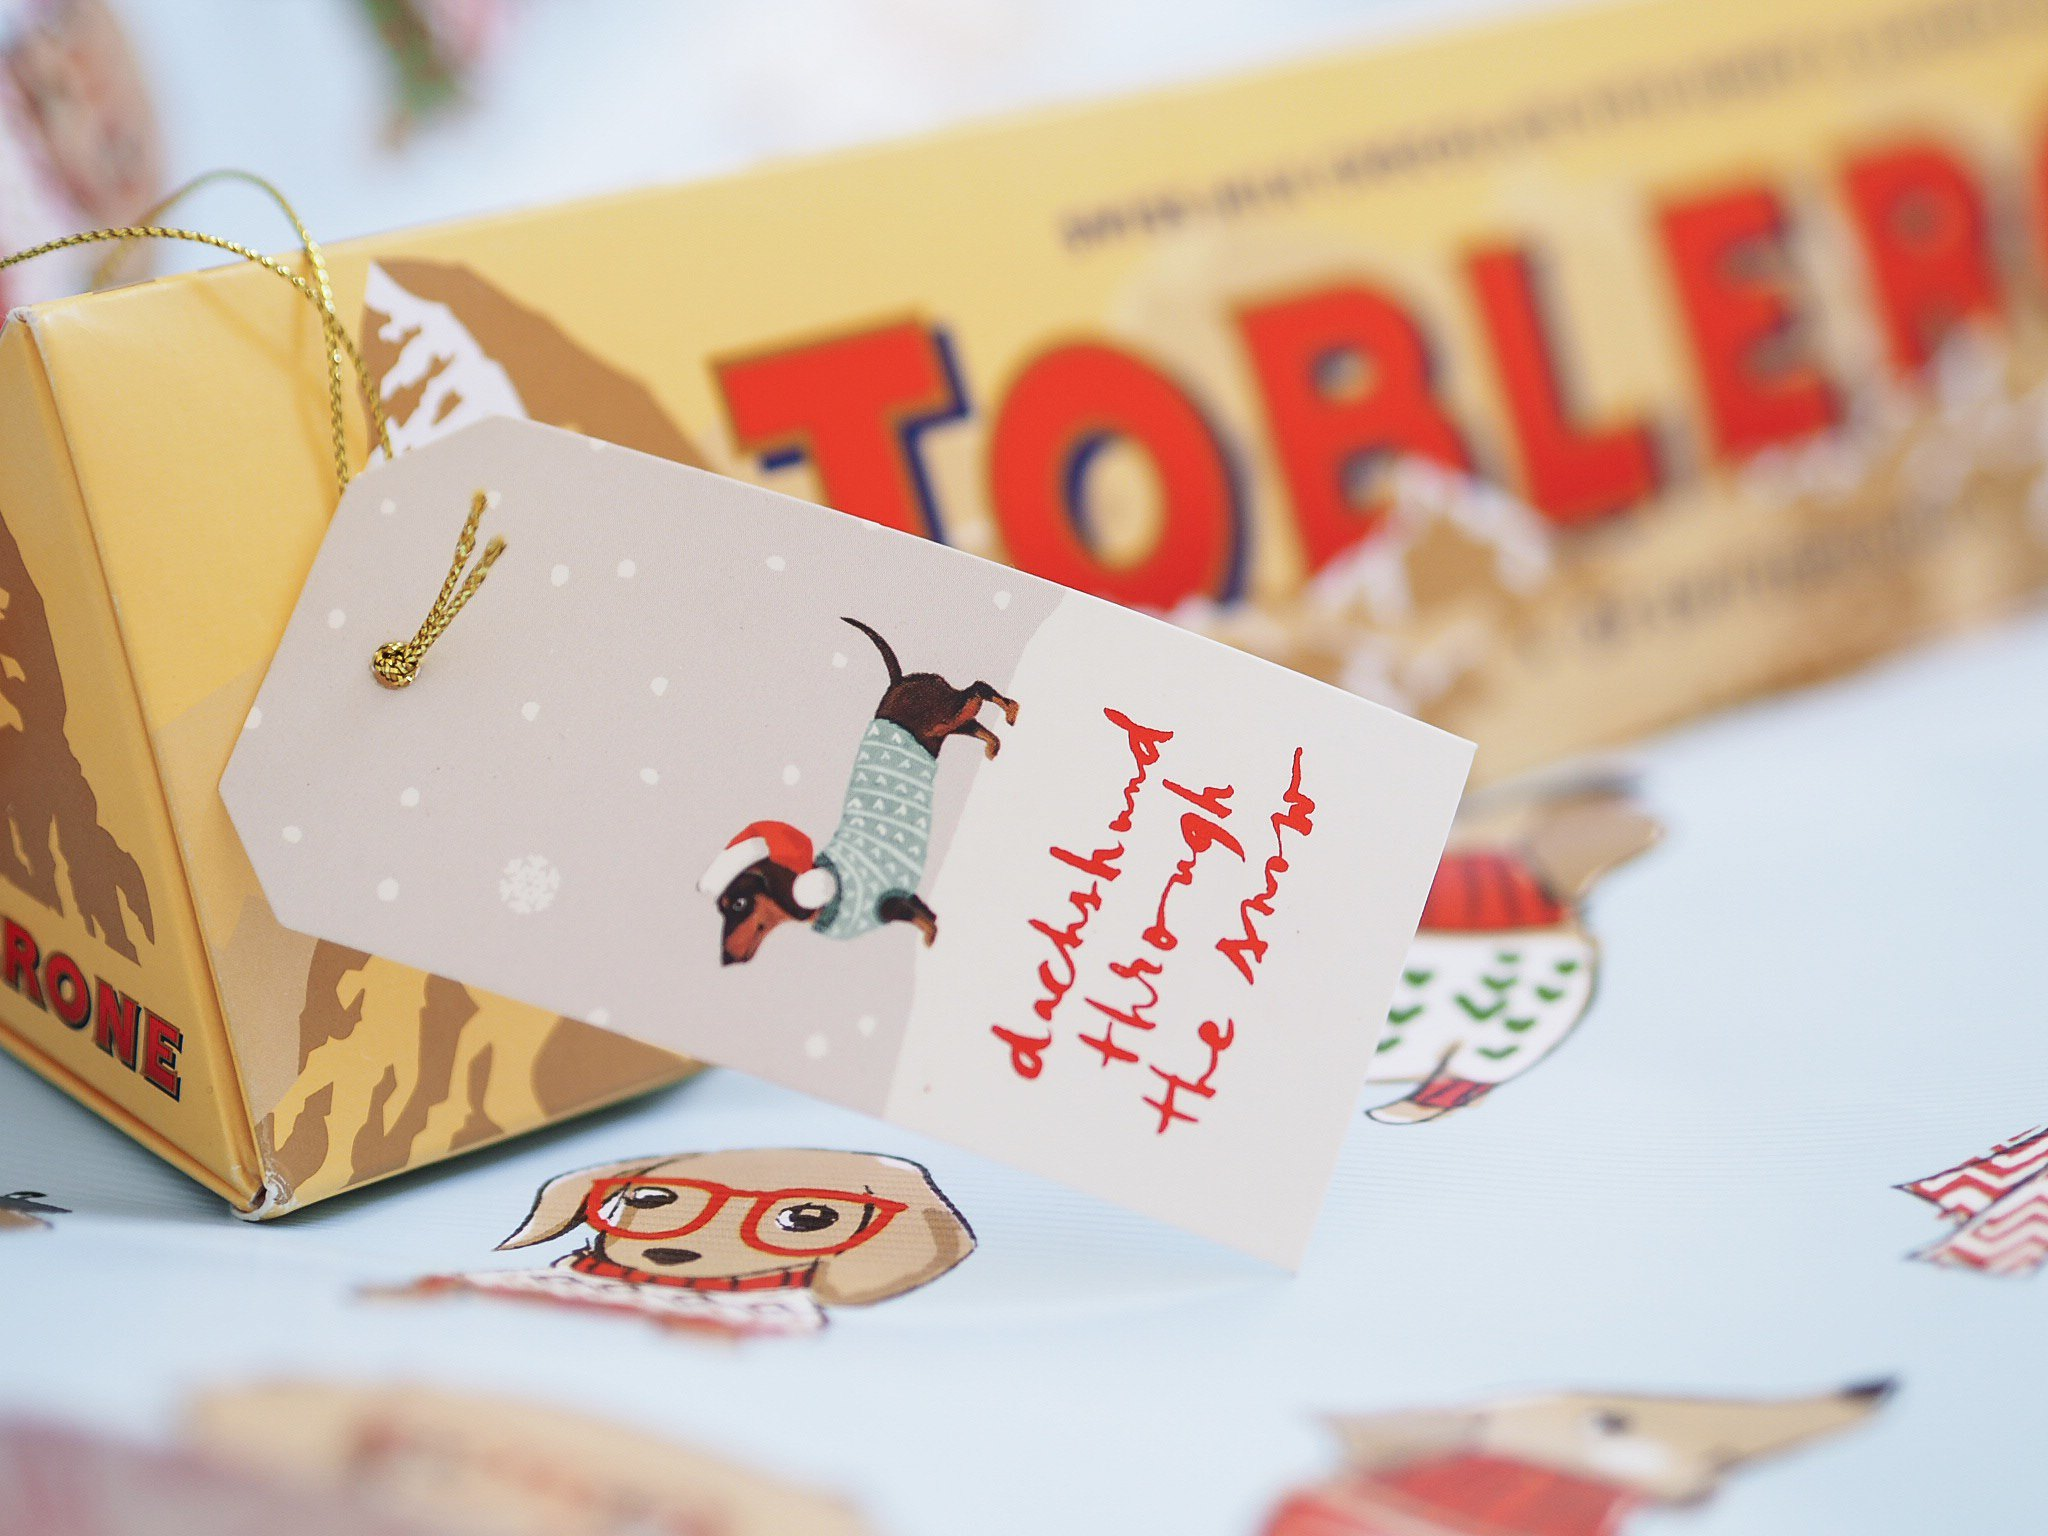 Toblerone Christmas